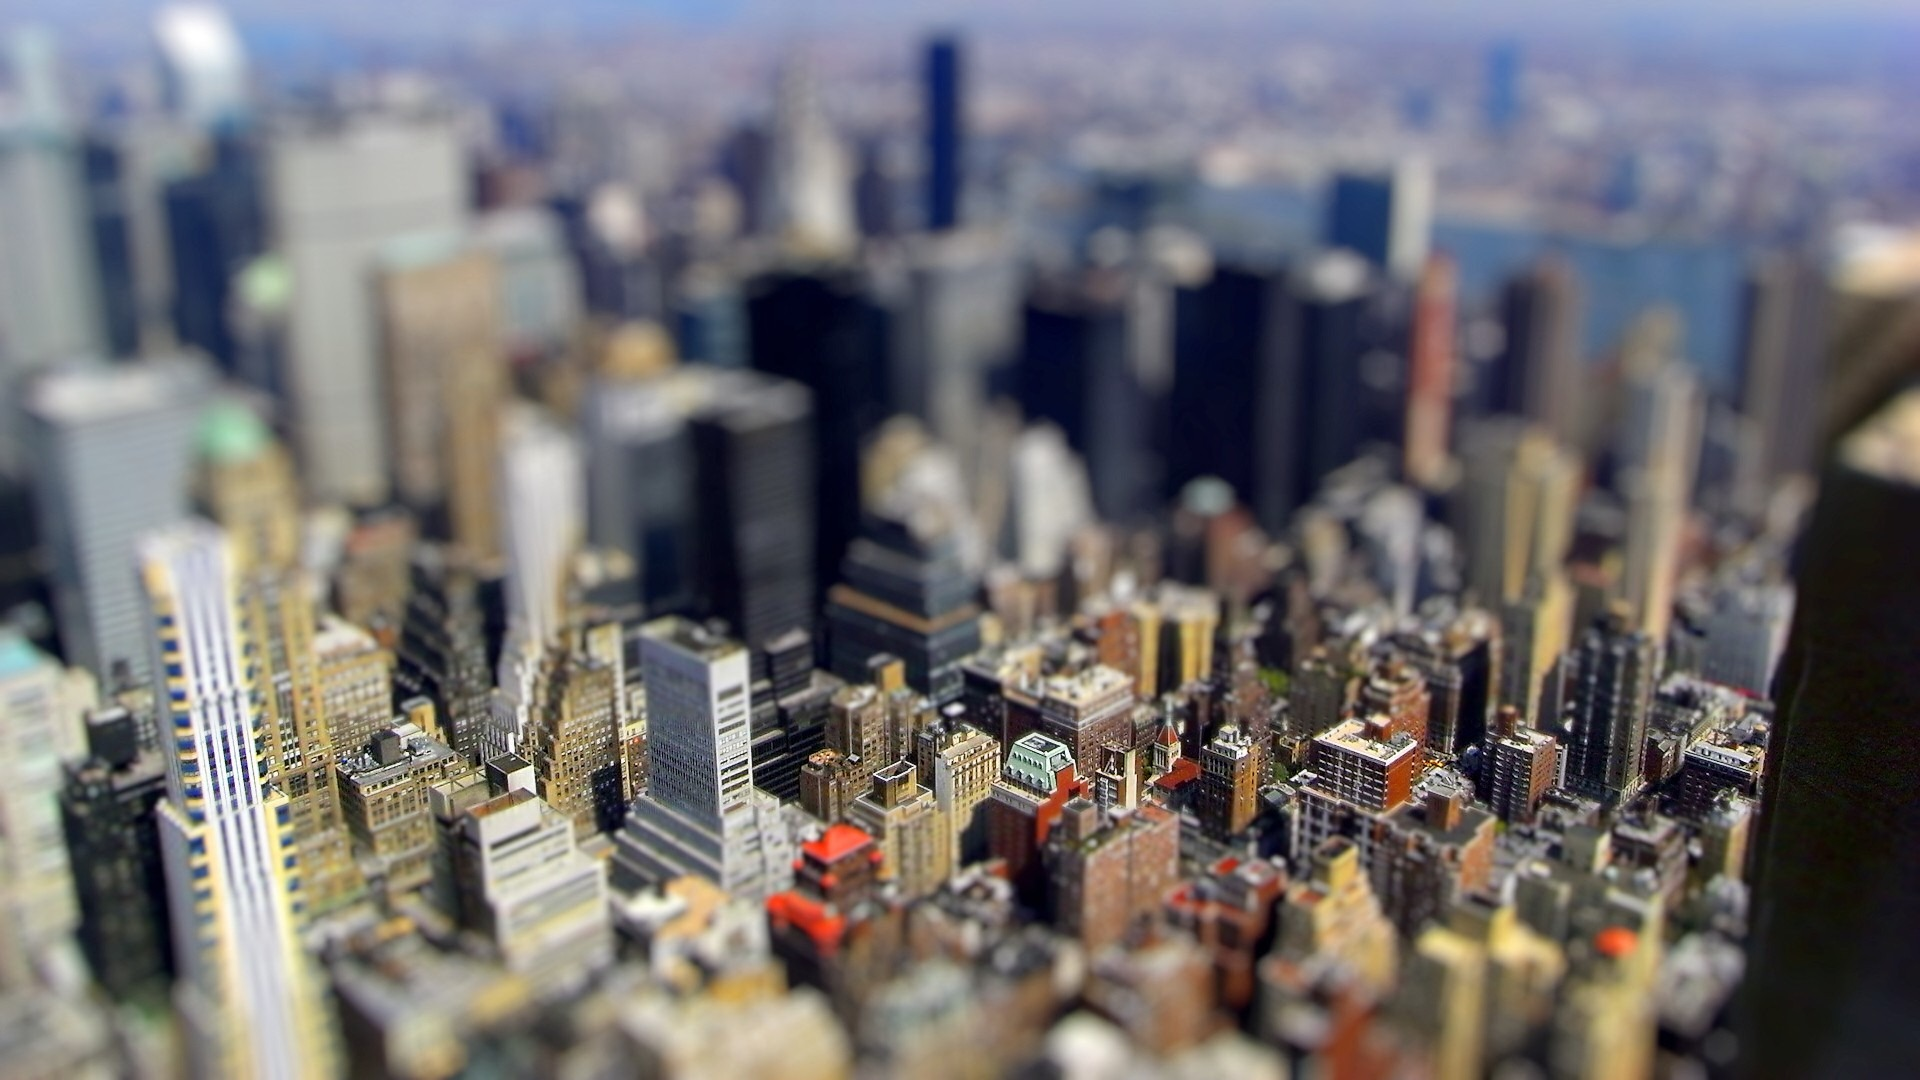 Miniature city wallpaper 1920x1080 wallpaper download 10wallpaper